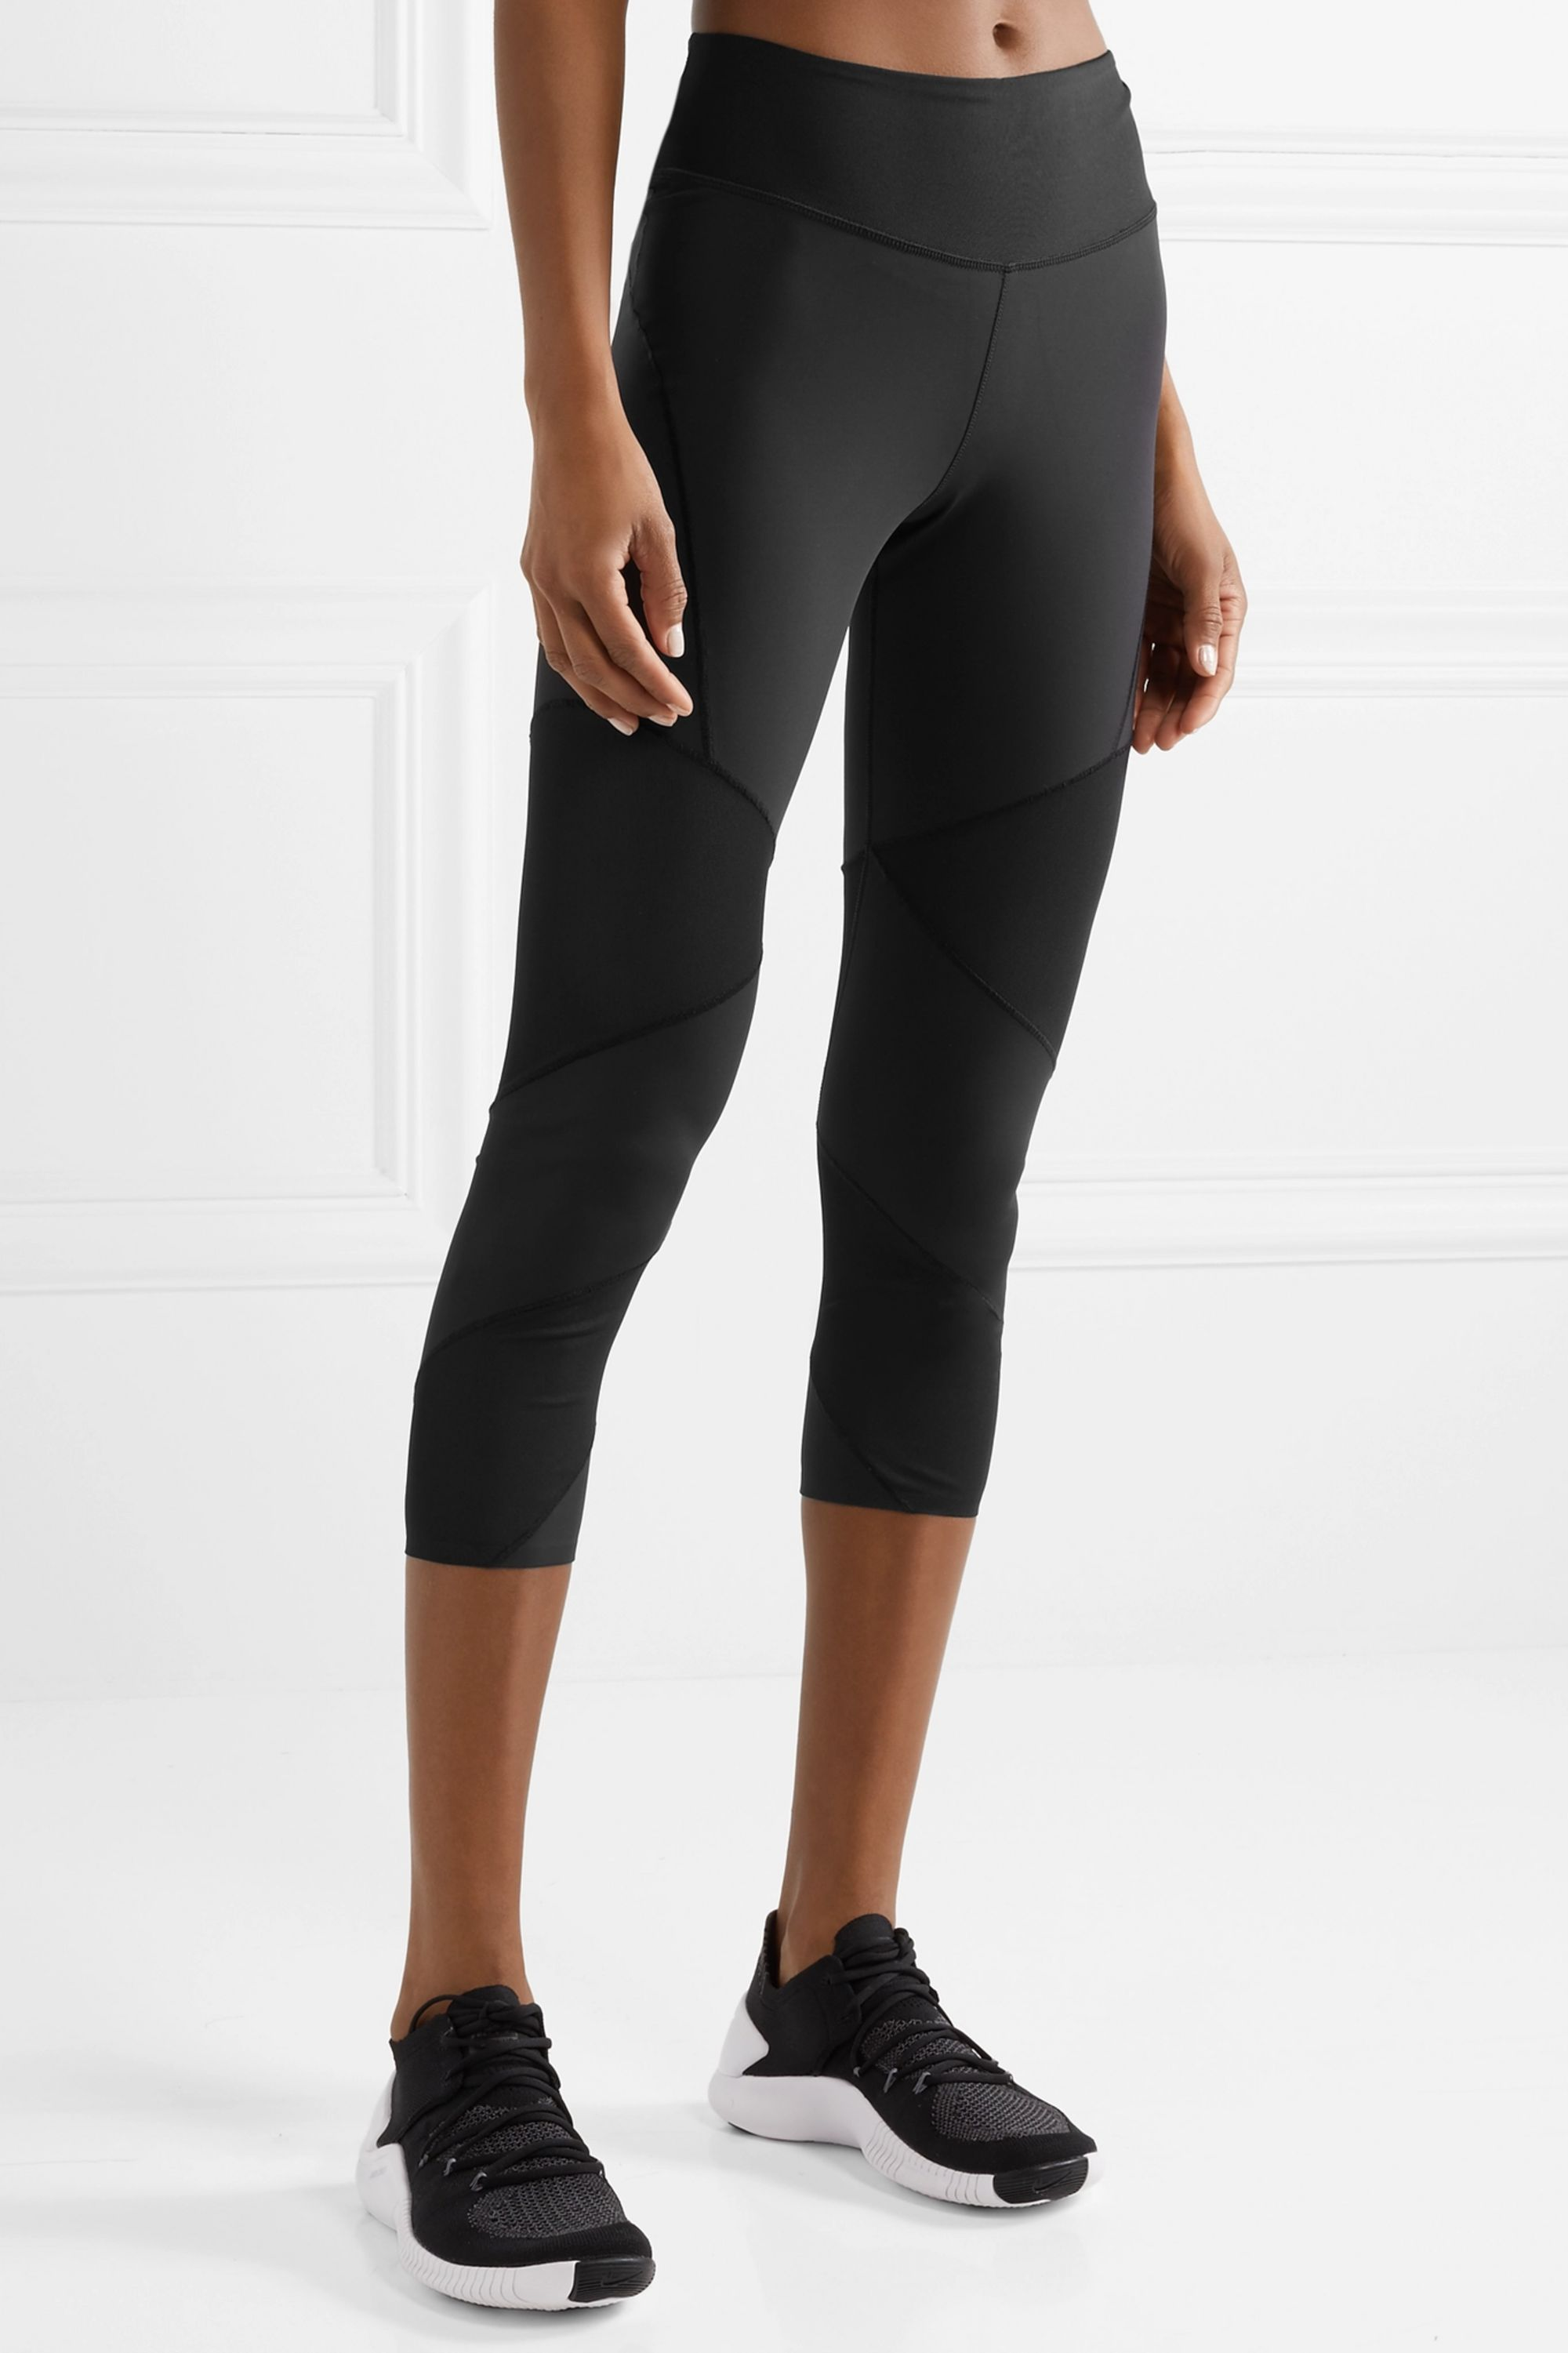 Nike Fly Lux cropped mesh-paneled stretch leggings